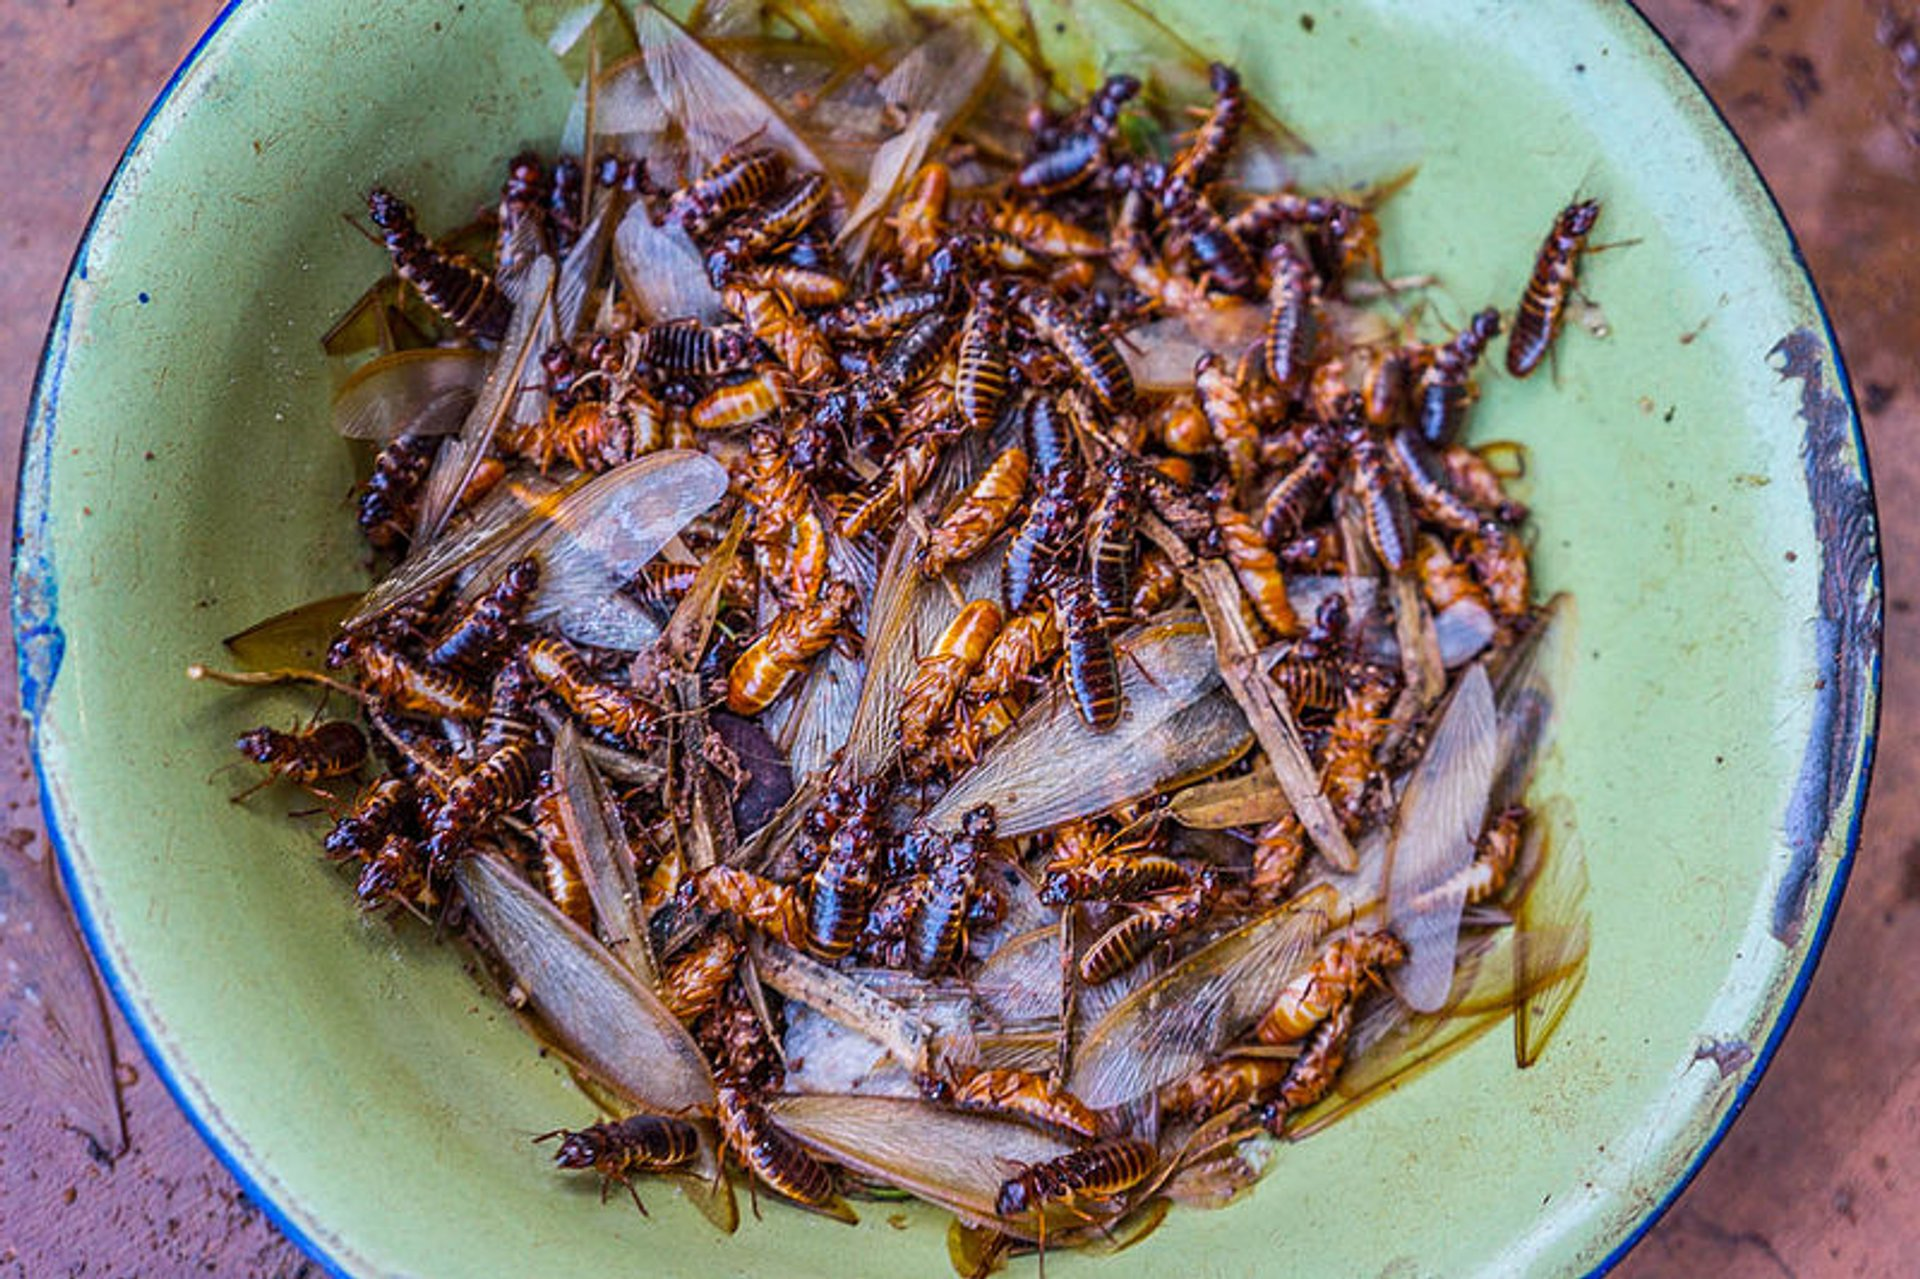 Roasted Termites in South Africa - Best Season 2019